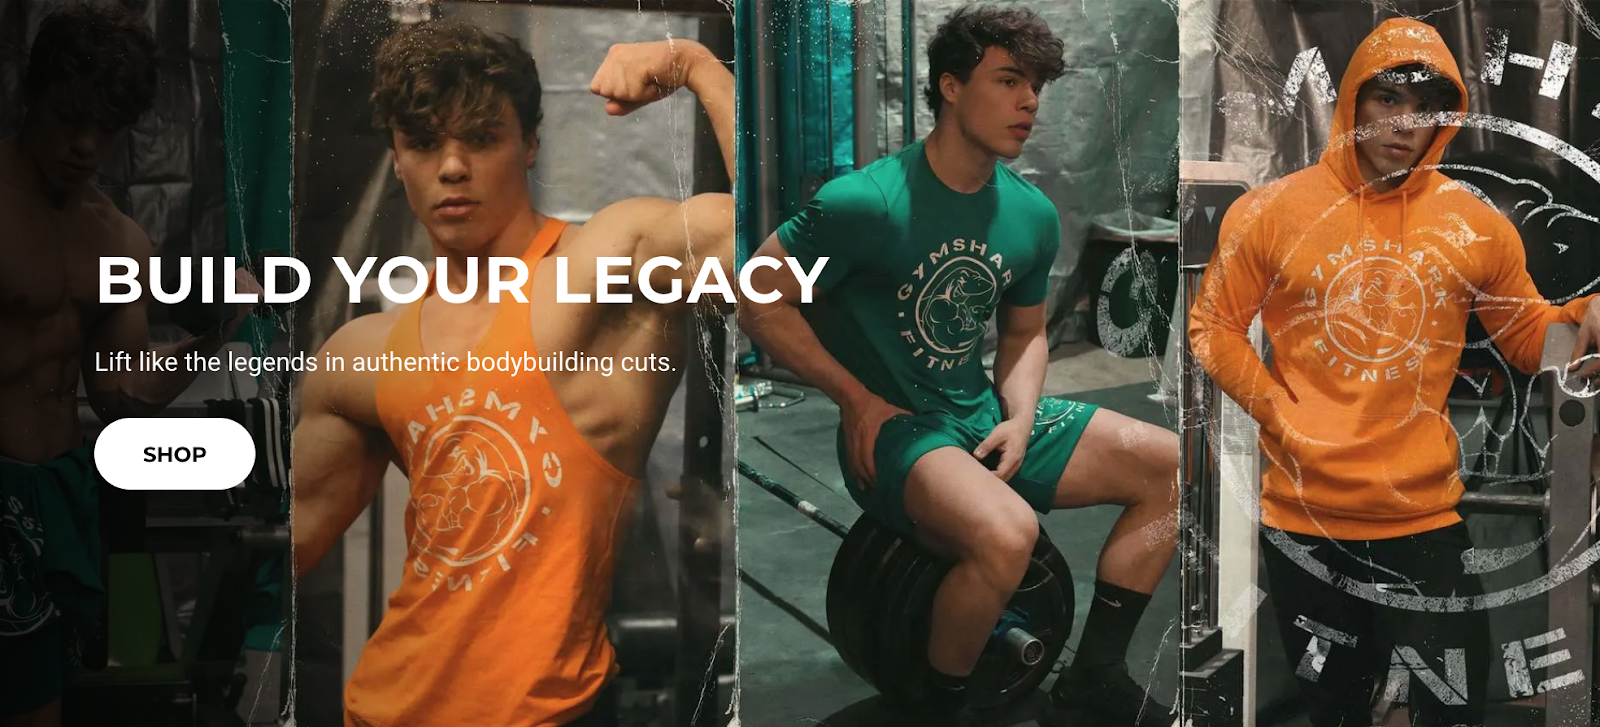 Gymshark homepage with three men working out in the background